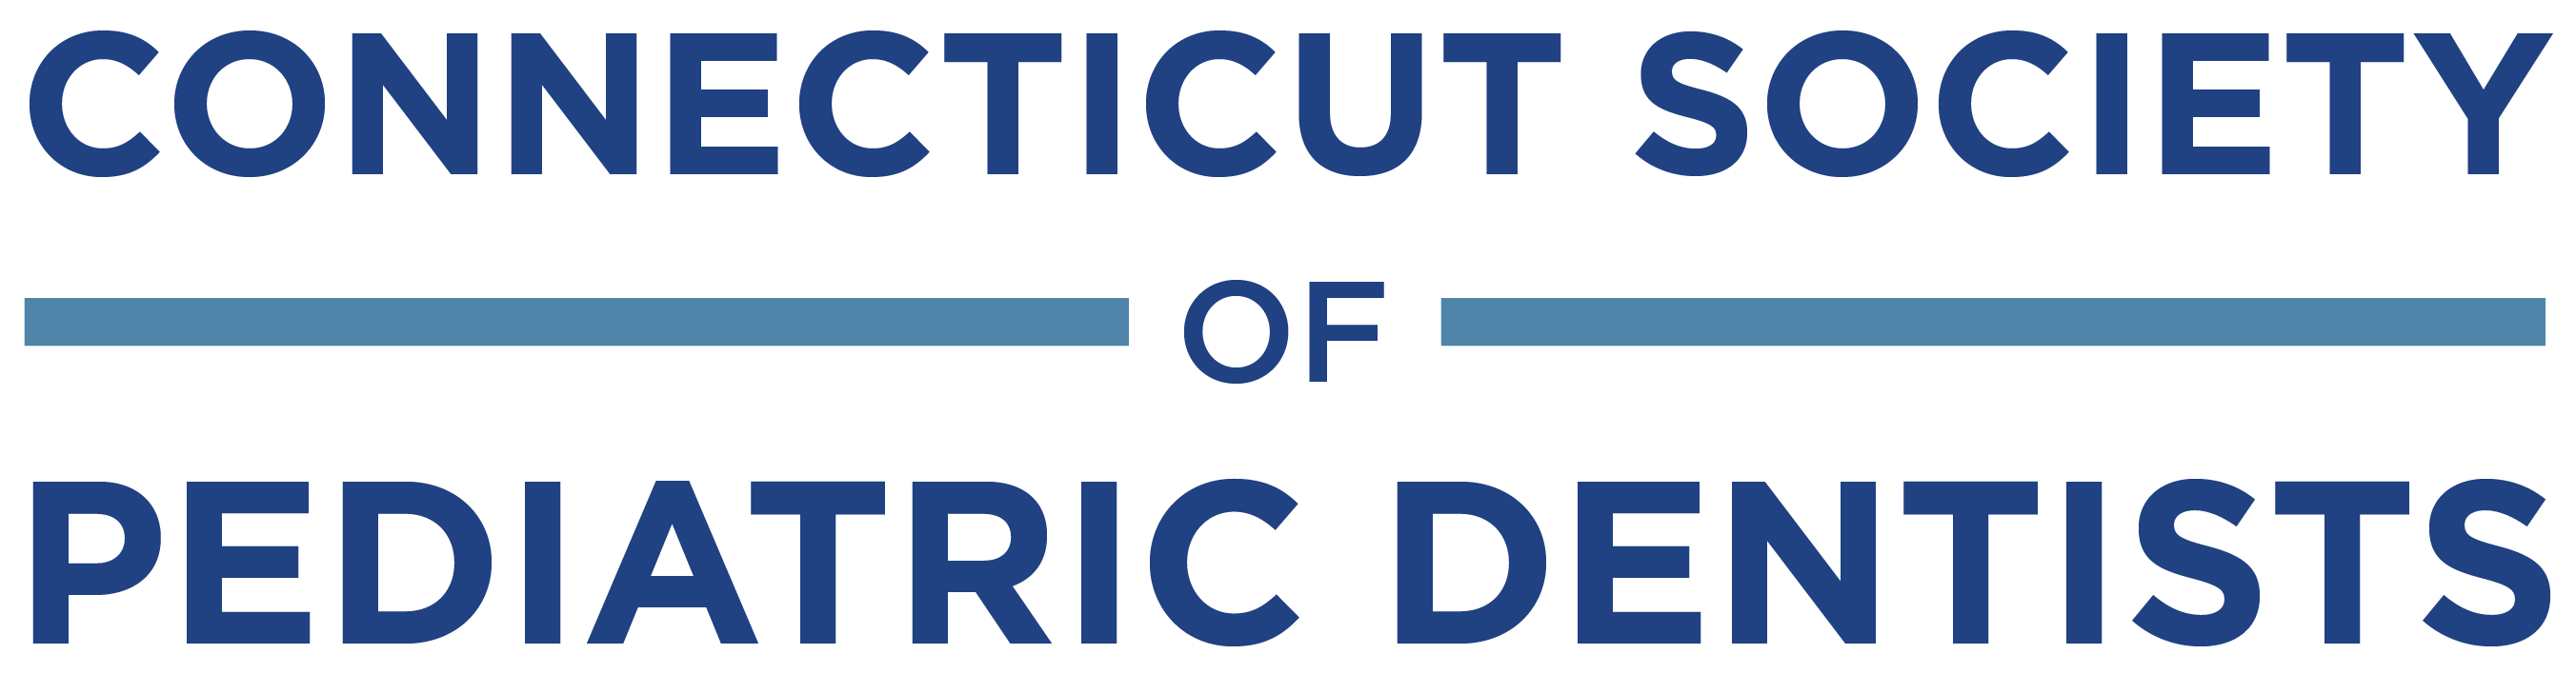 Connecticut Society of Pediatric Dentists Logo